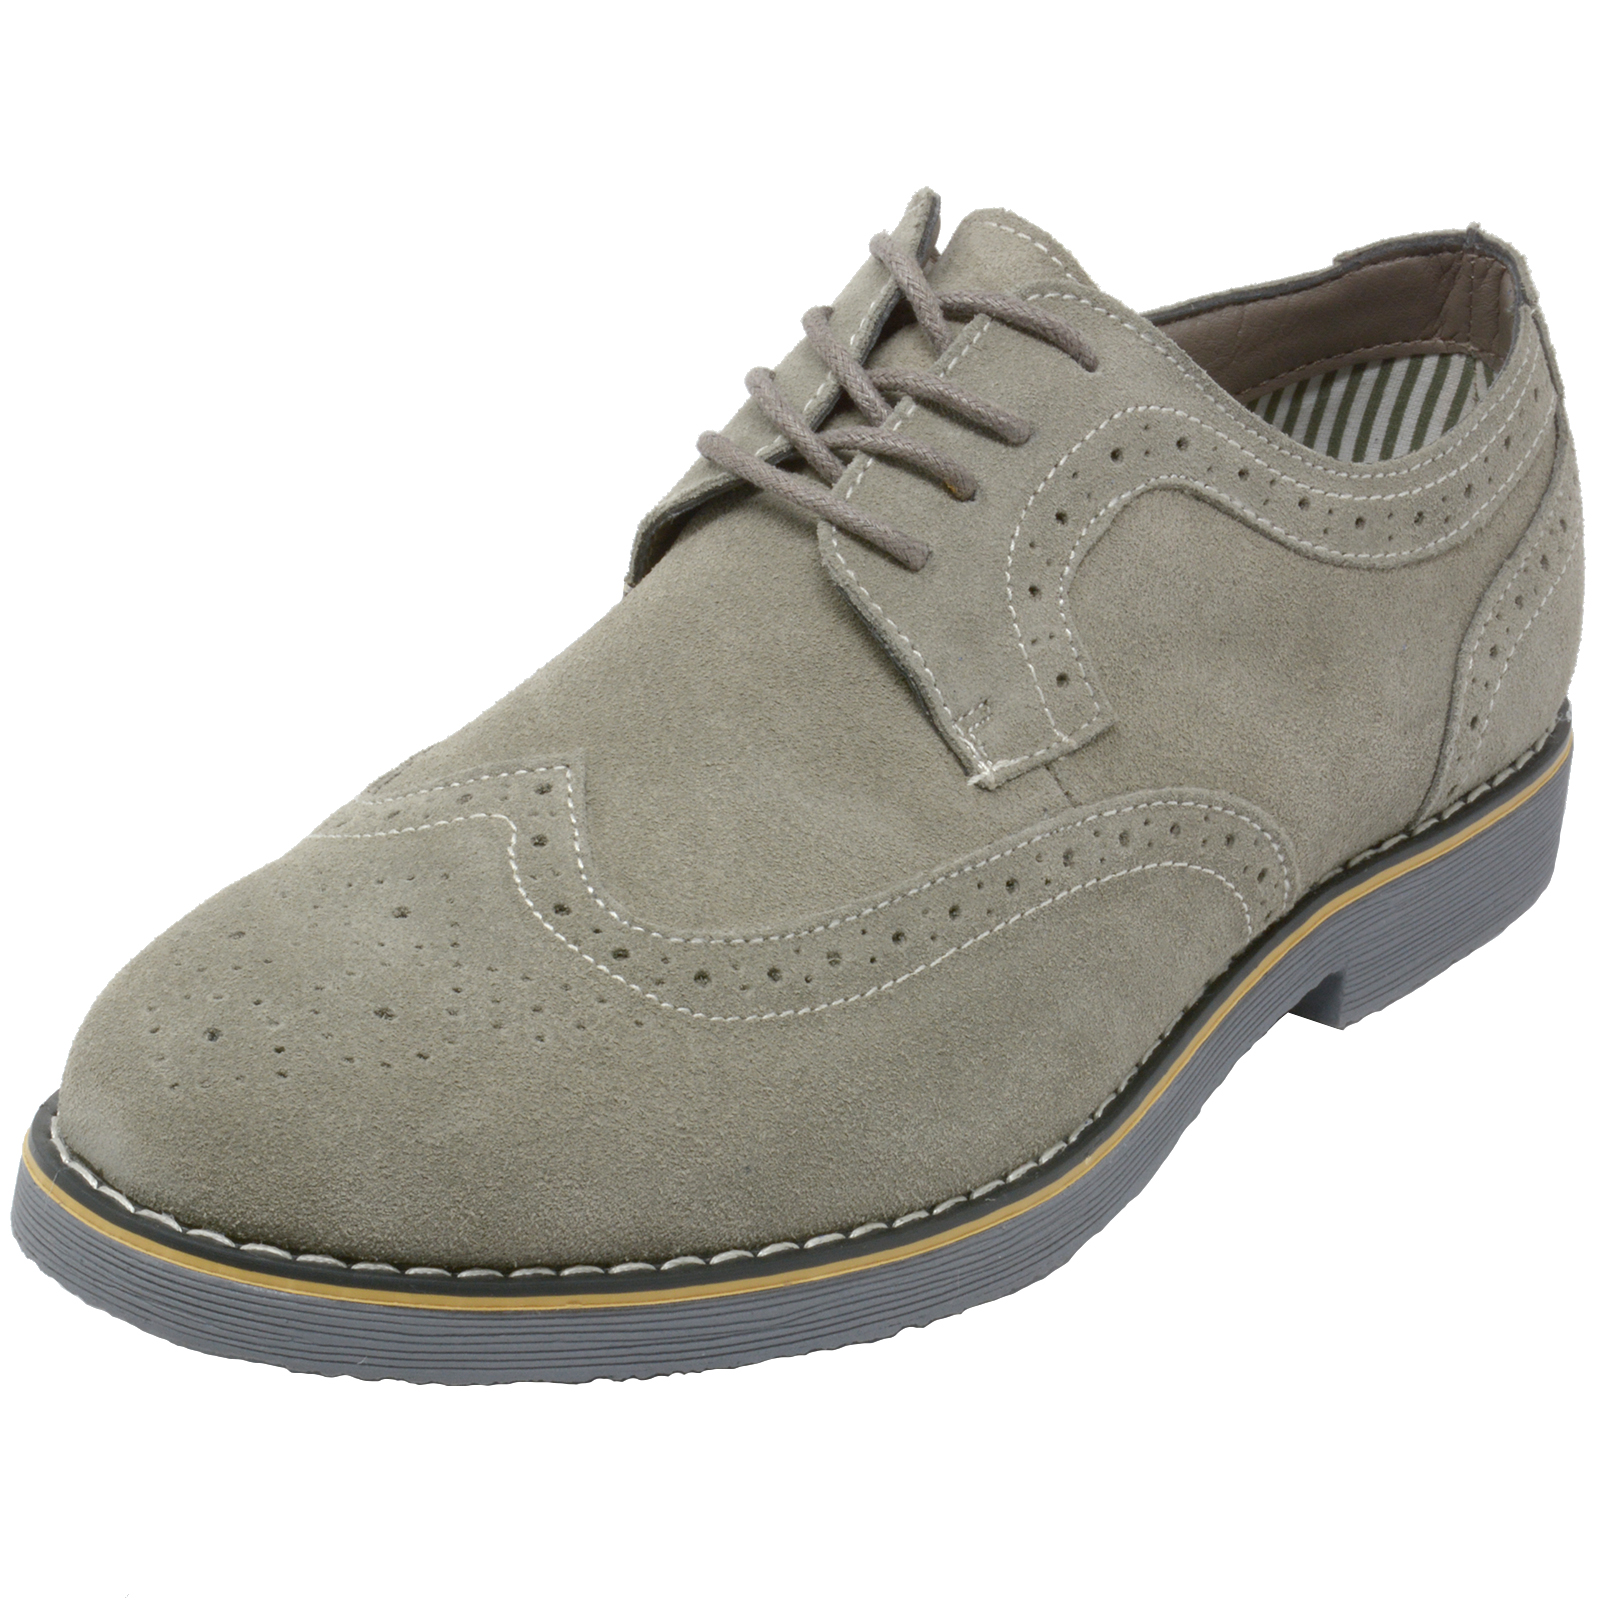 Alpine-Swiss-Beau-Mens-Dress-Shoes-Genuine-Suede-Wing-Tip-Brogue-Lace-Up-Oxfords thumbnail 17